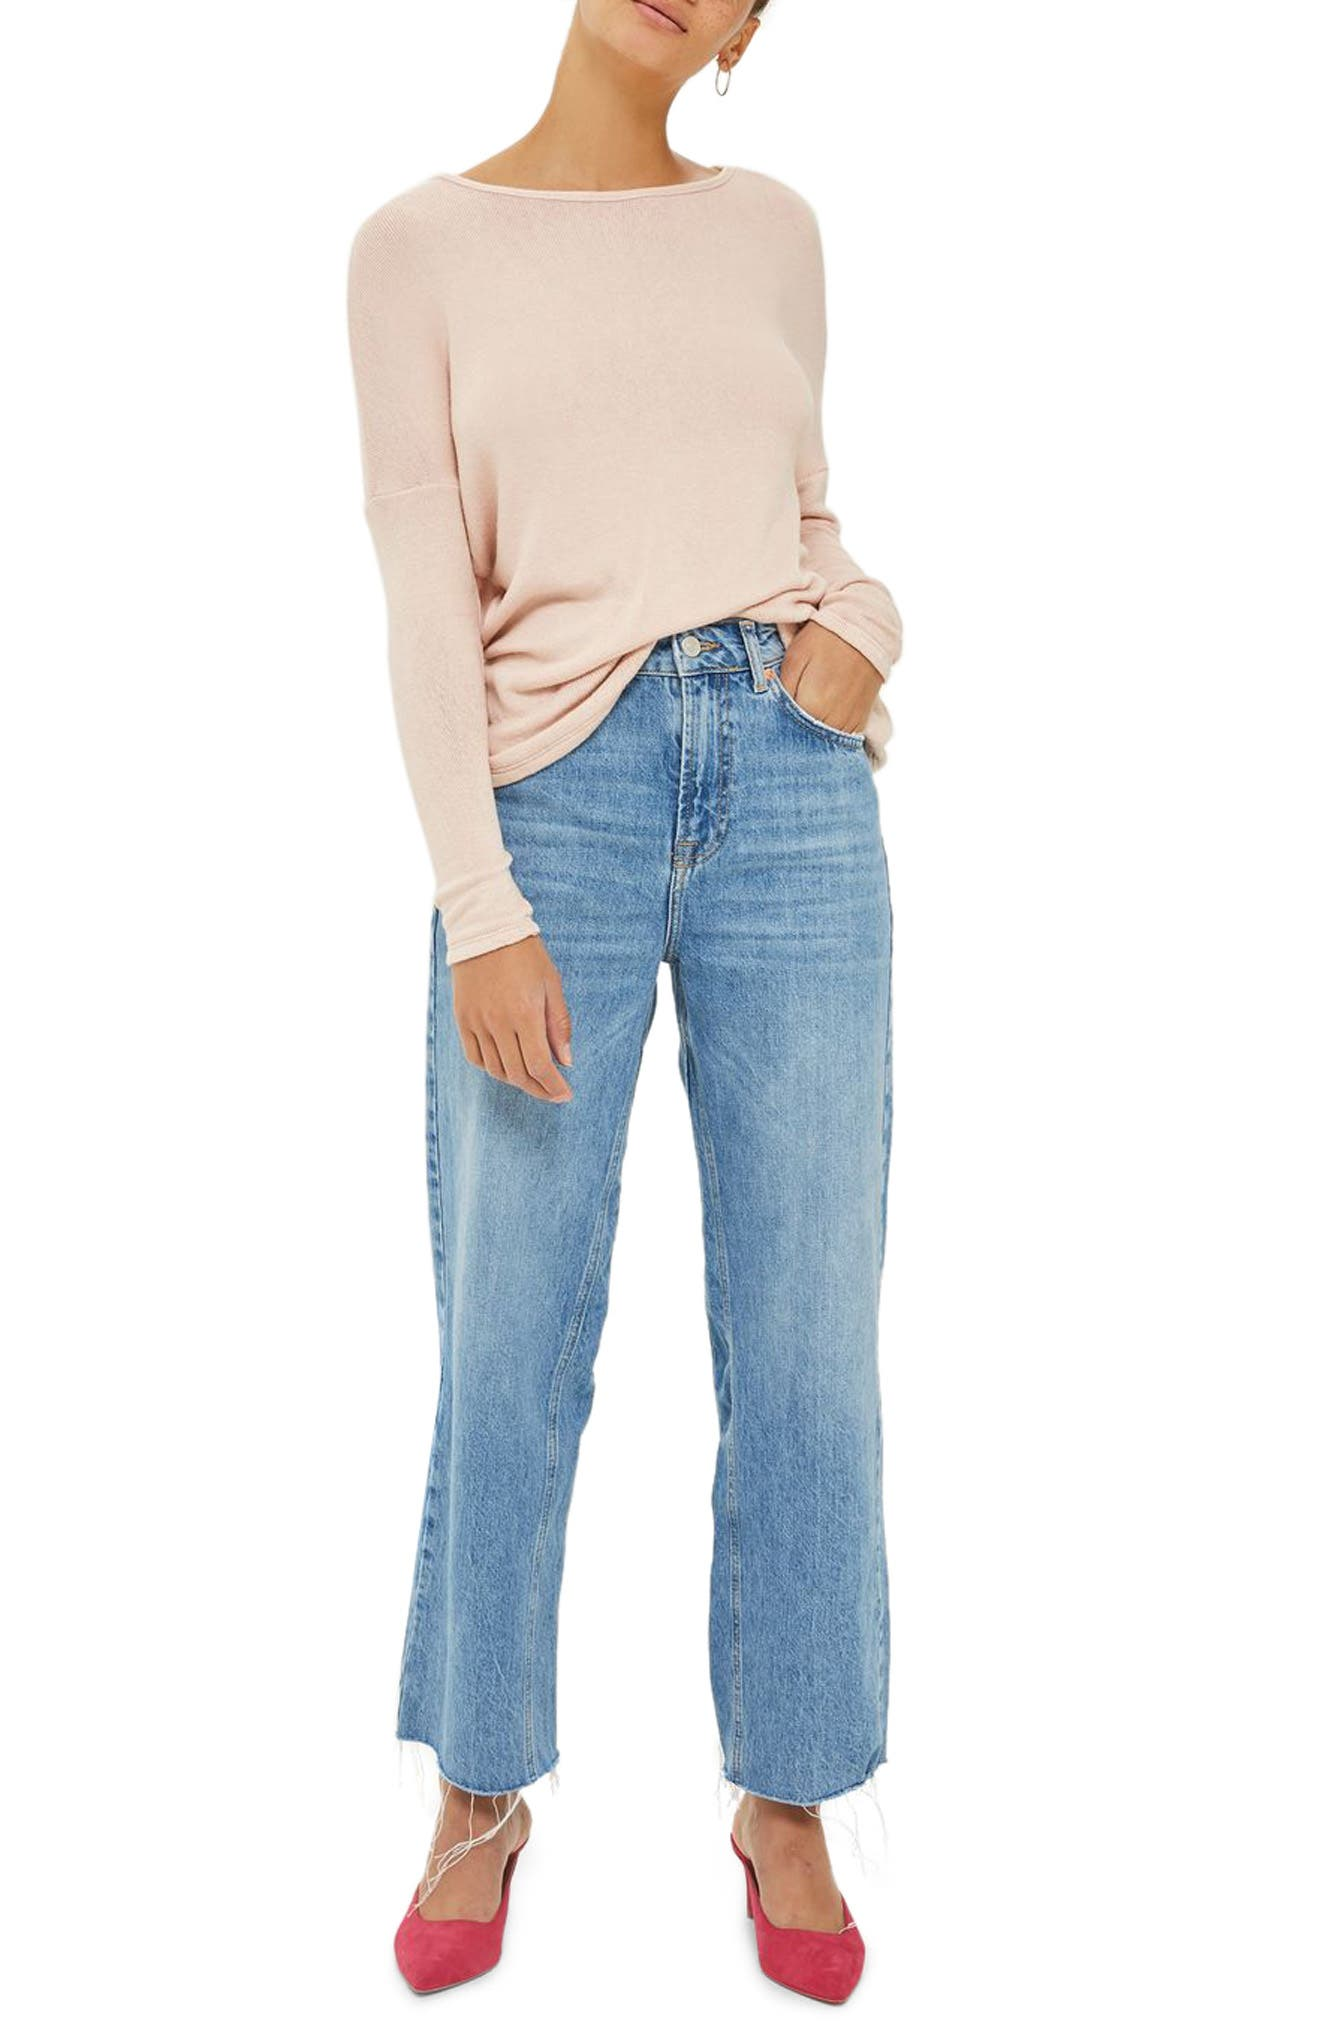 Alternate Image 1 Selected - Topshop Tie Back Sweater